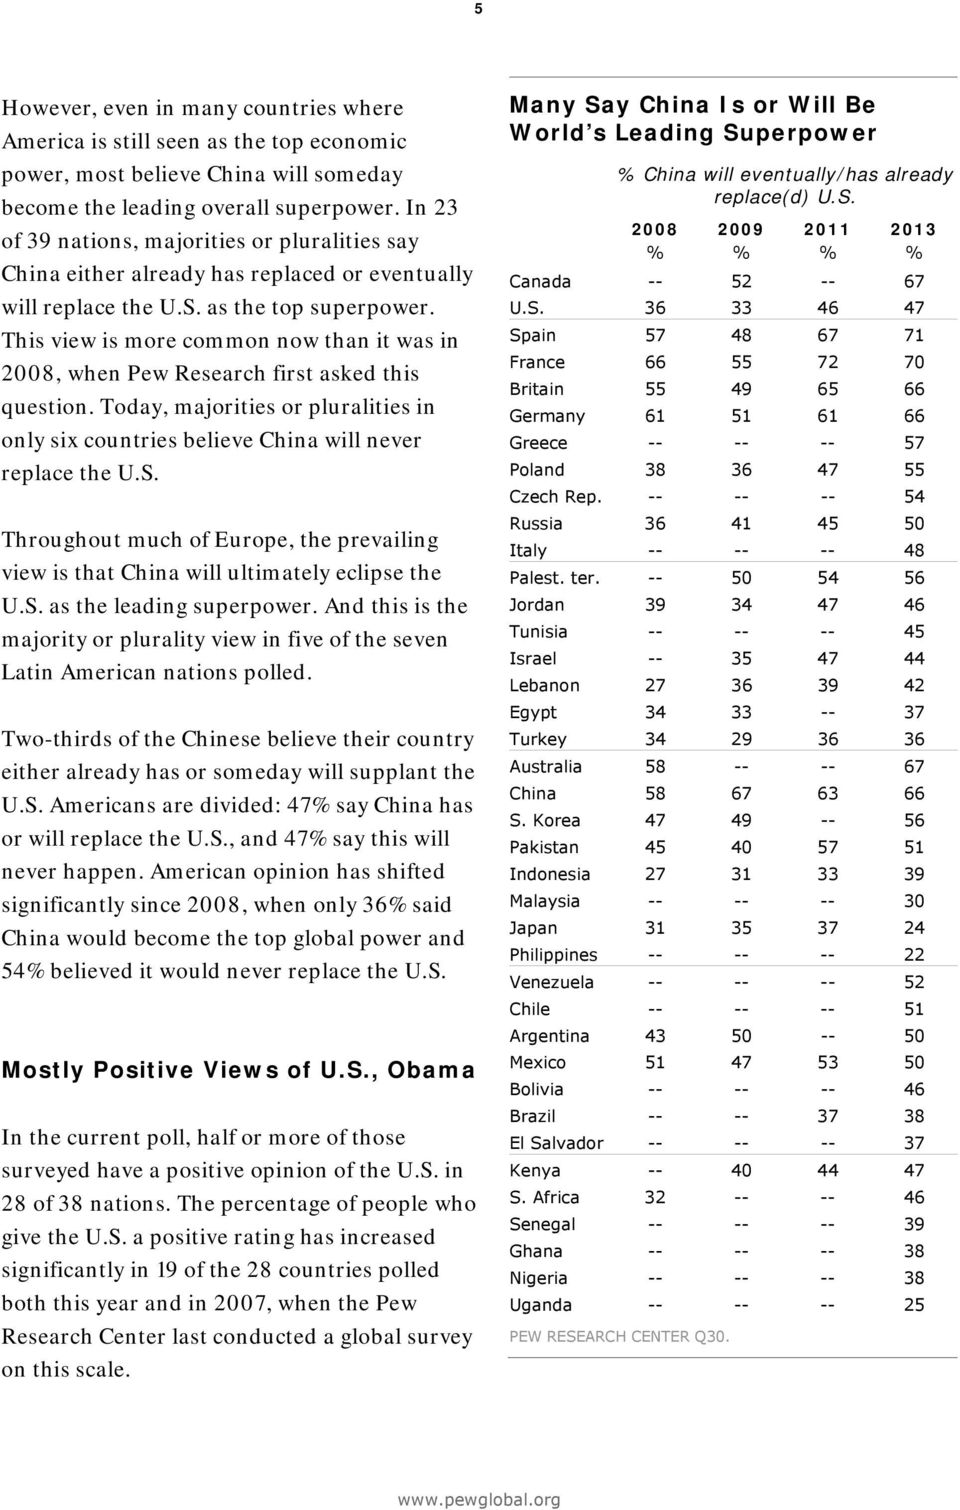 This view is more common now than it was in, when Pew Research first asked this question. Today, majorities or pluralities in only six countries believe China will never replace the U.S.